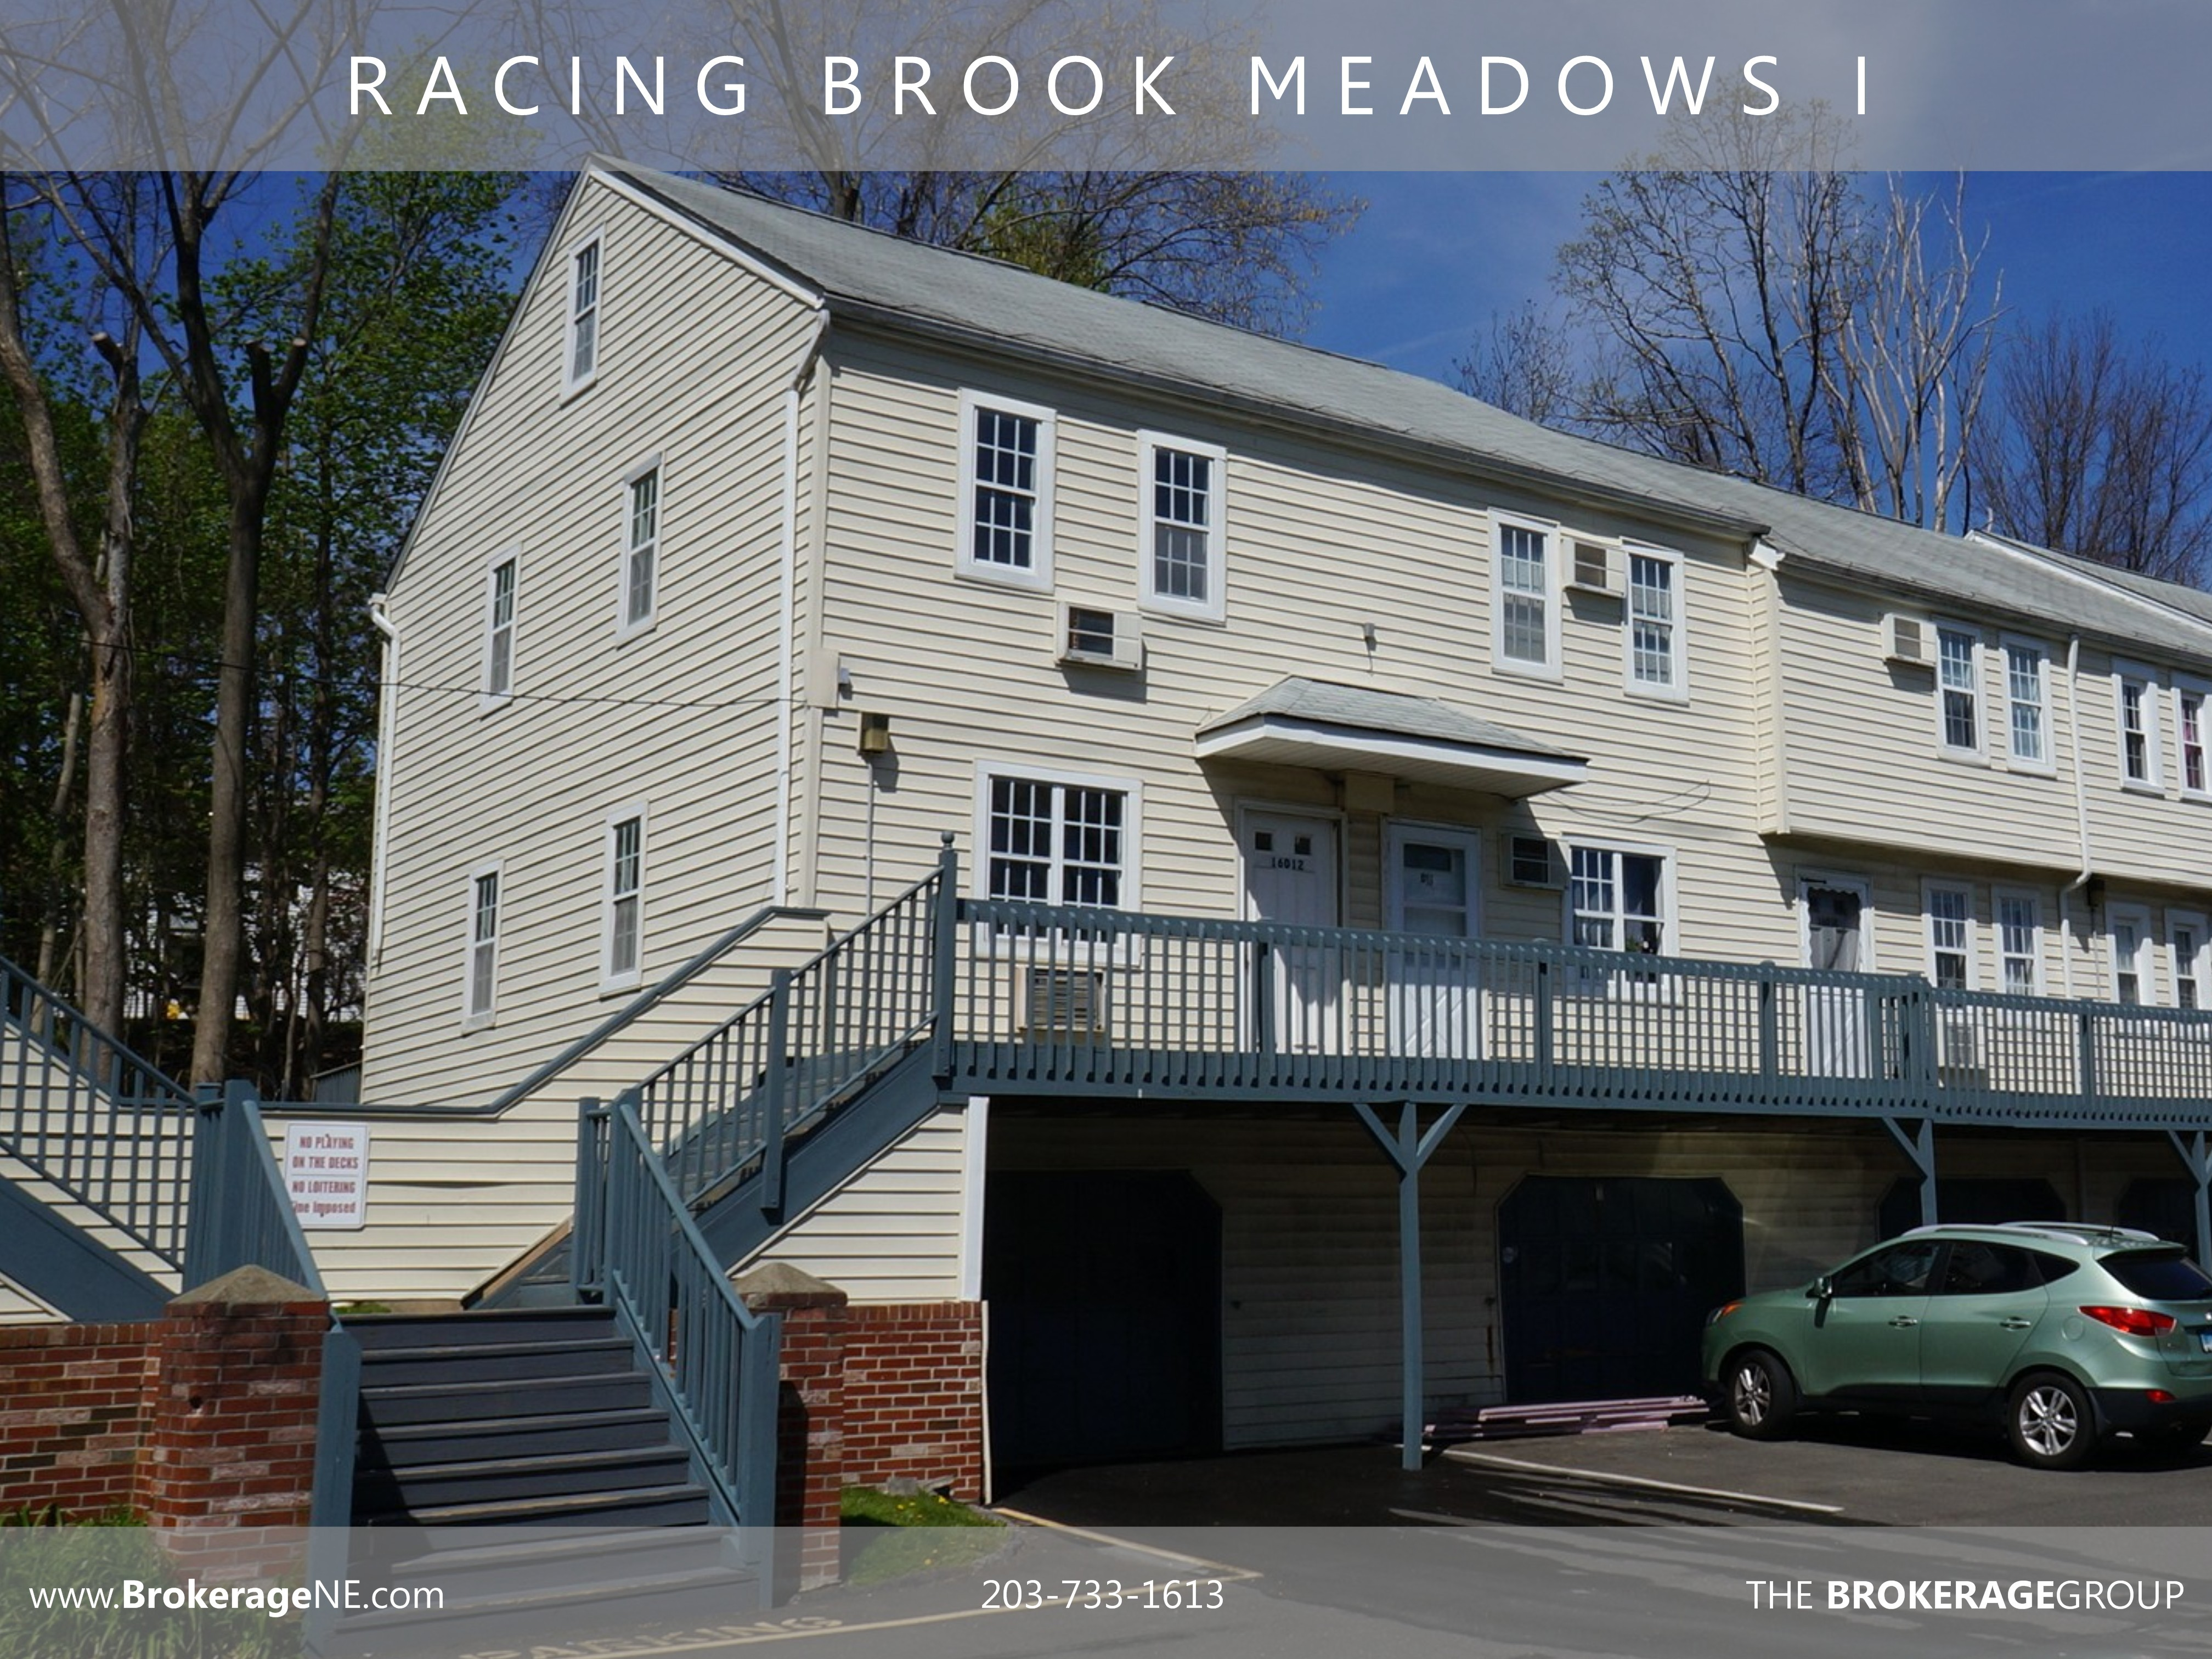 racing brook meadows townhouse.  danbury real estate for sale.